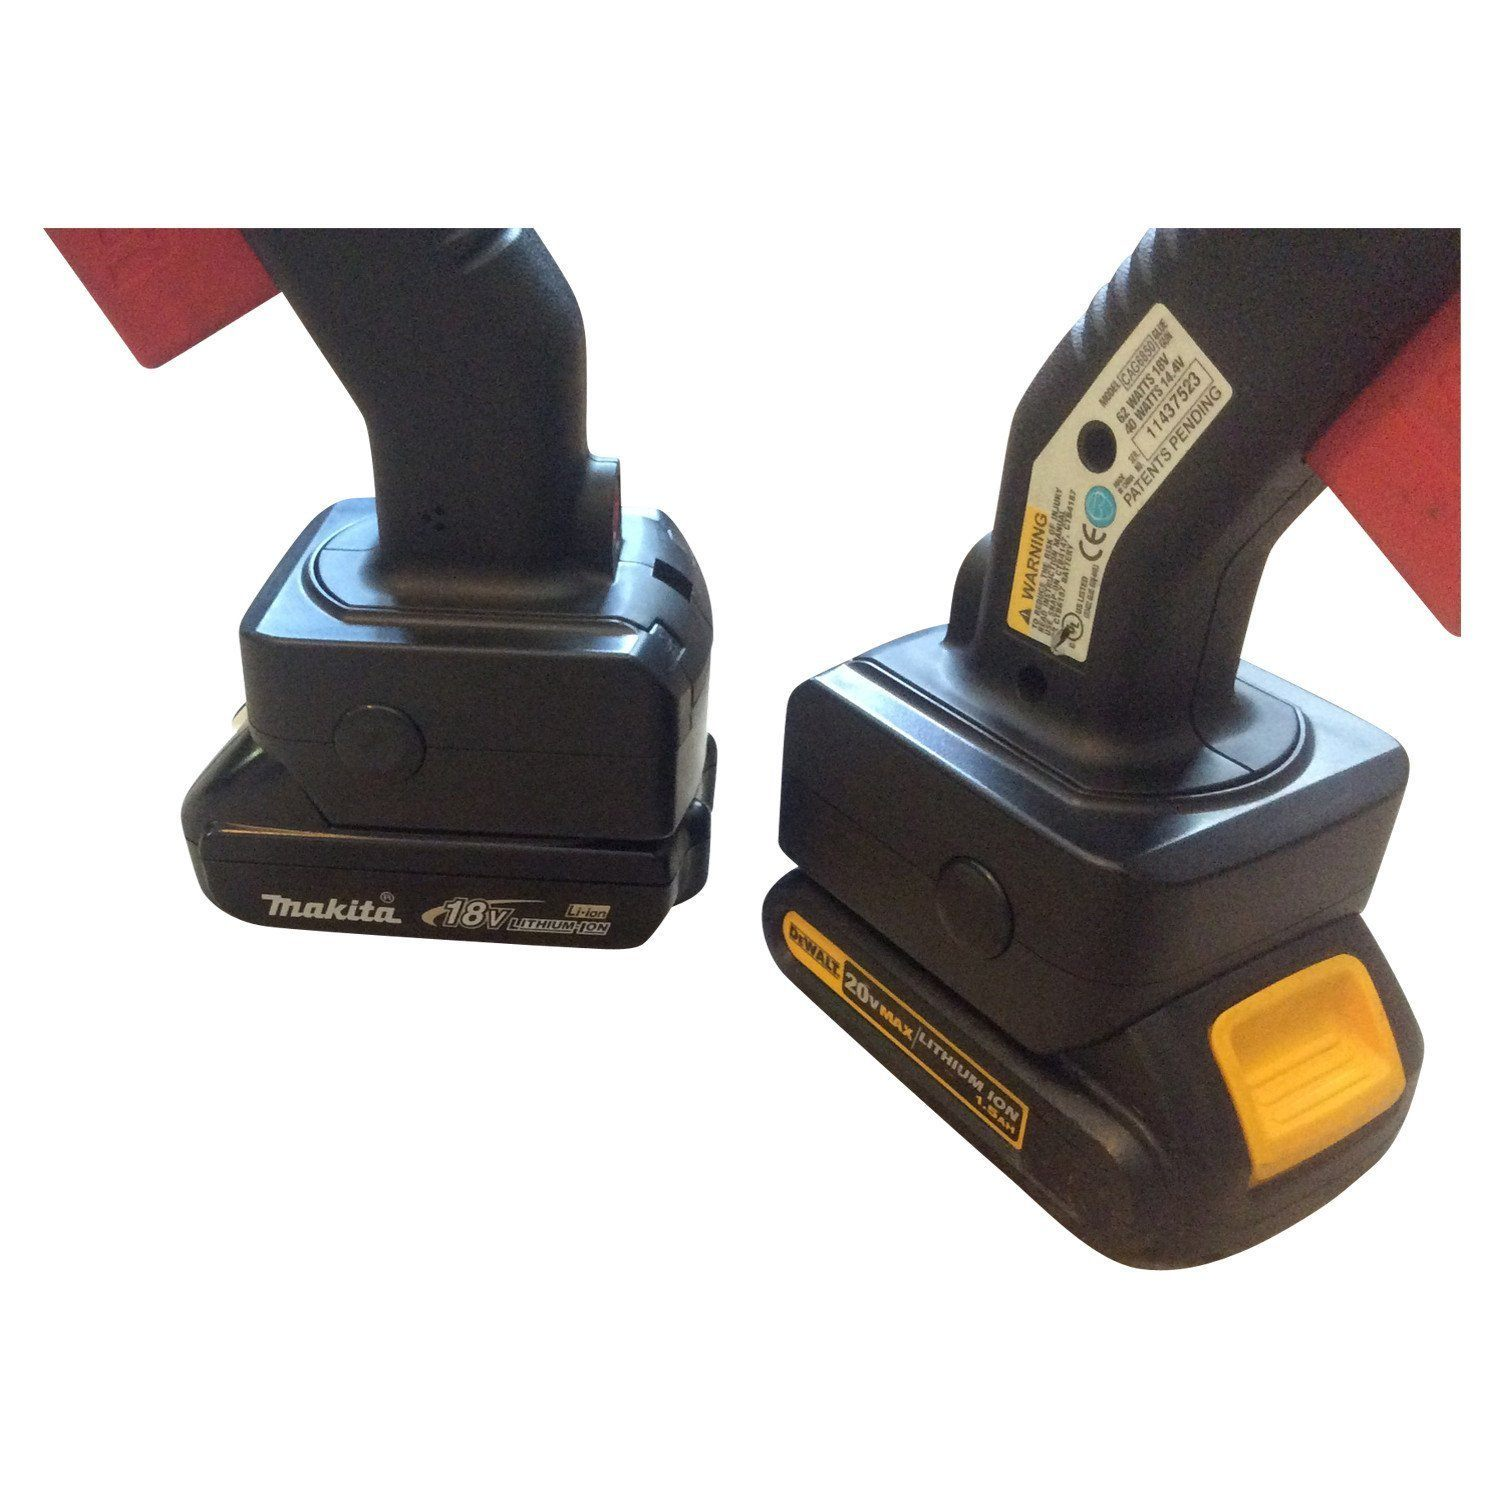 Elim A Dent Battery Adapter Snap-On To Makita